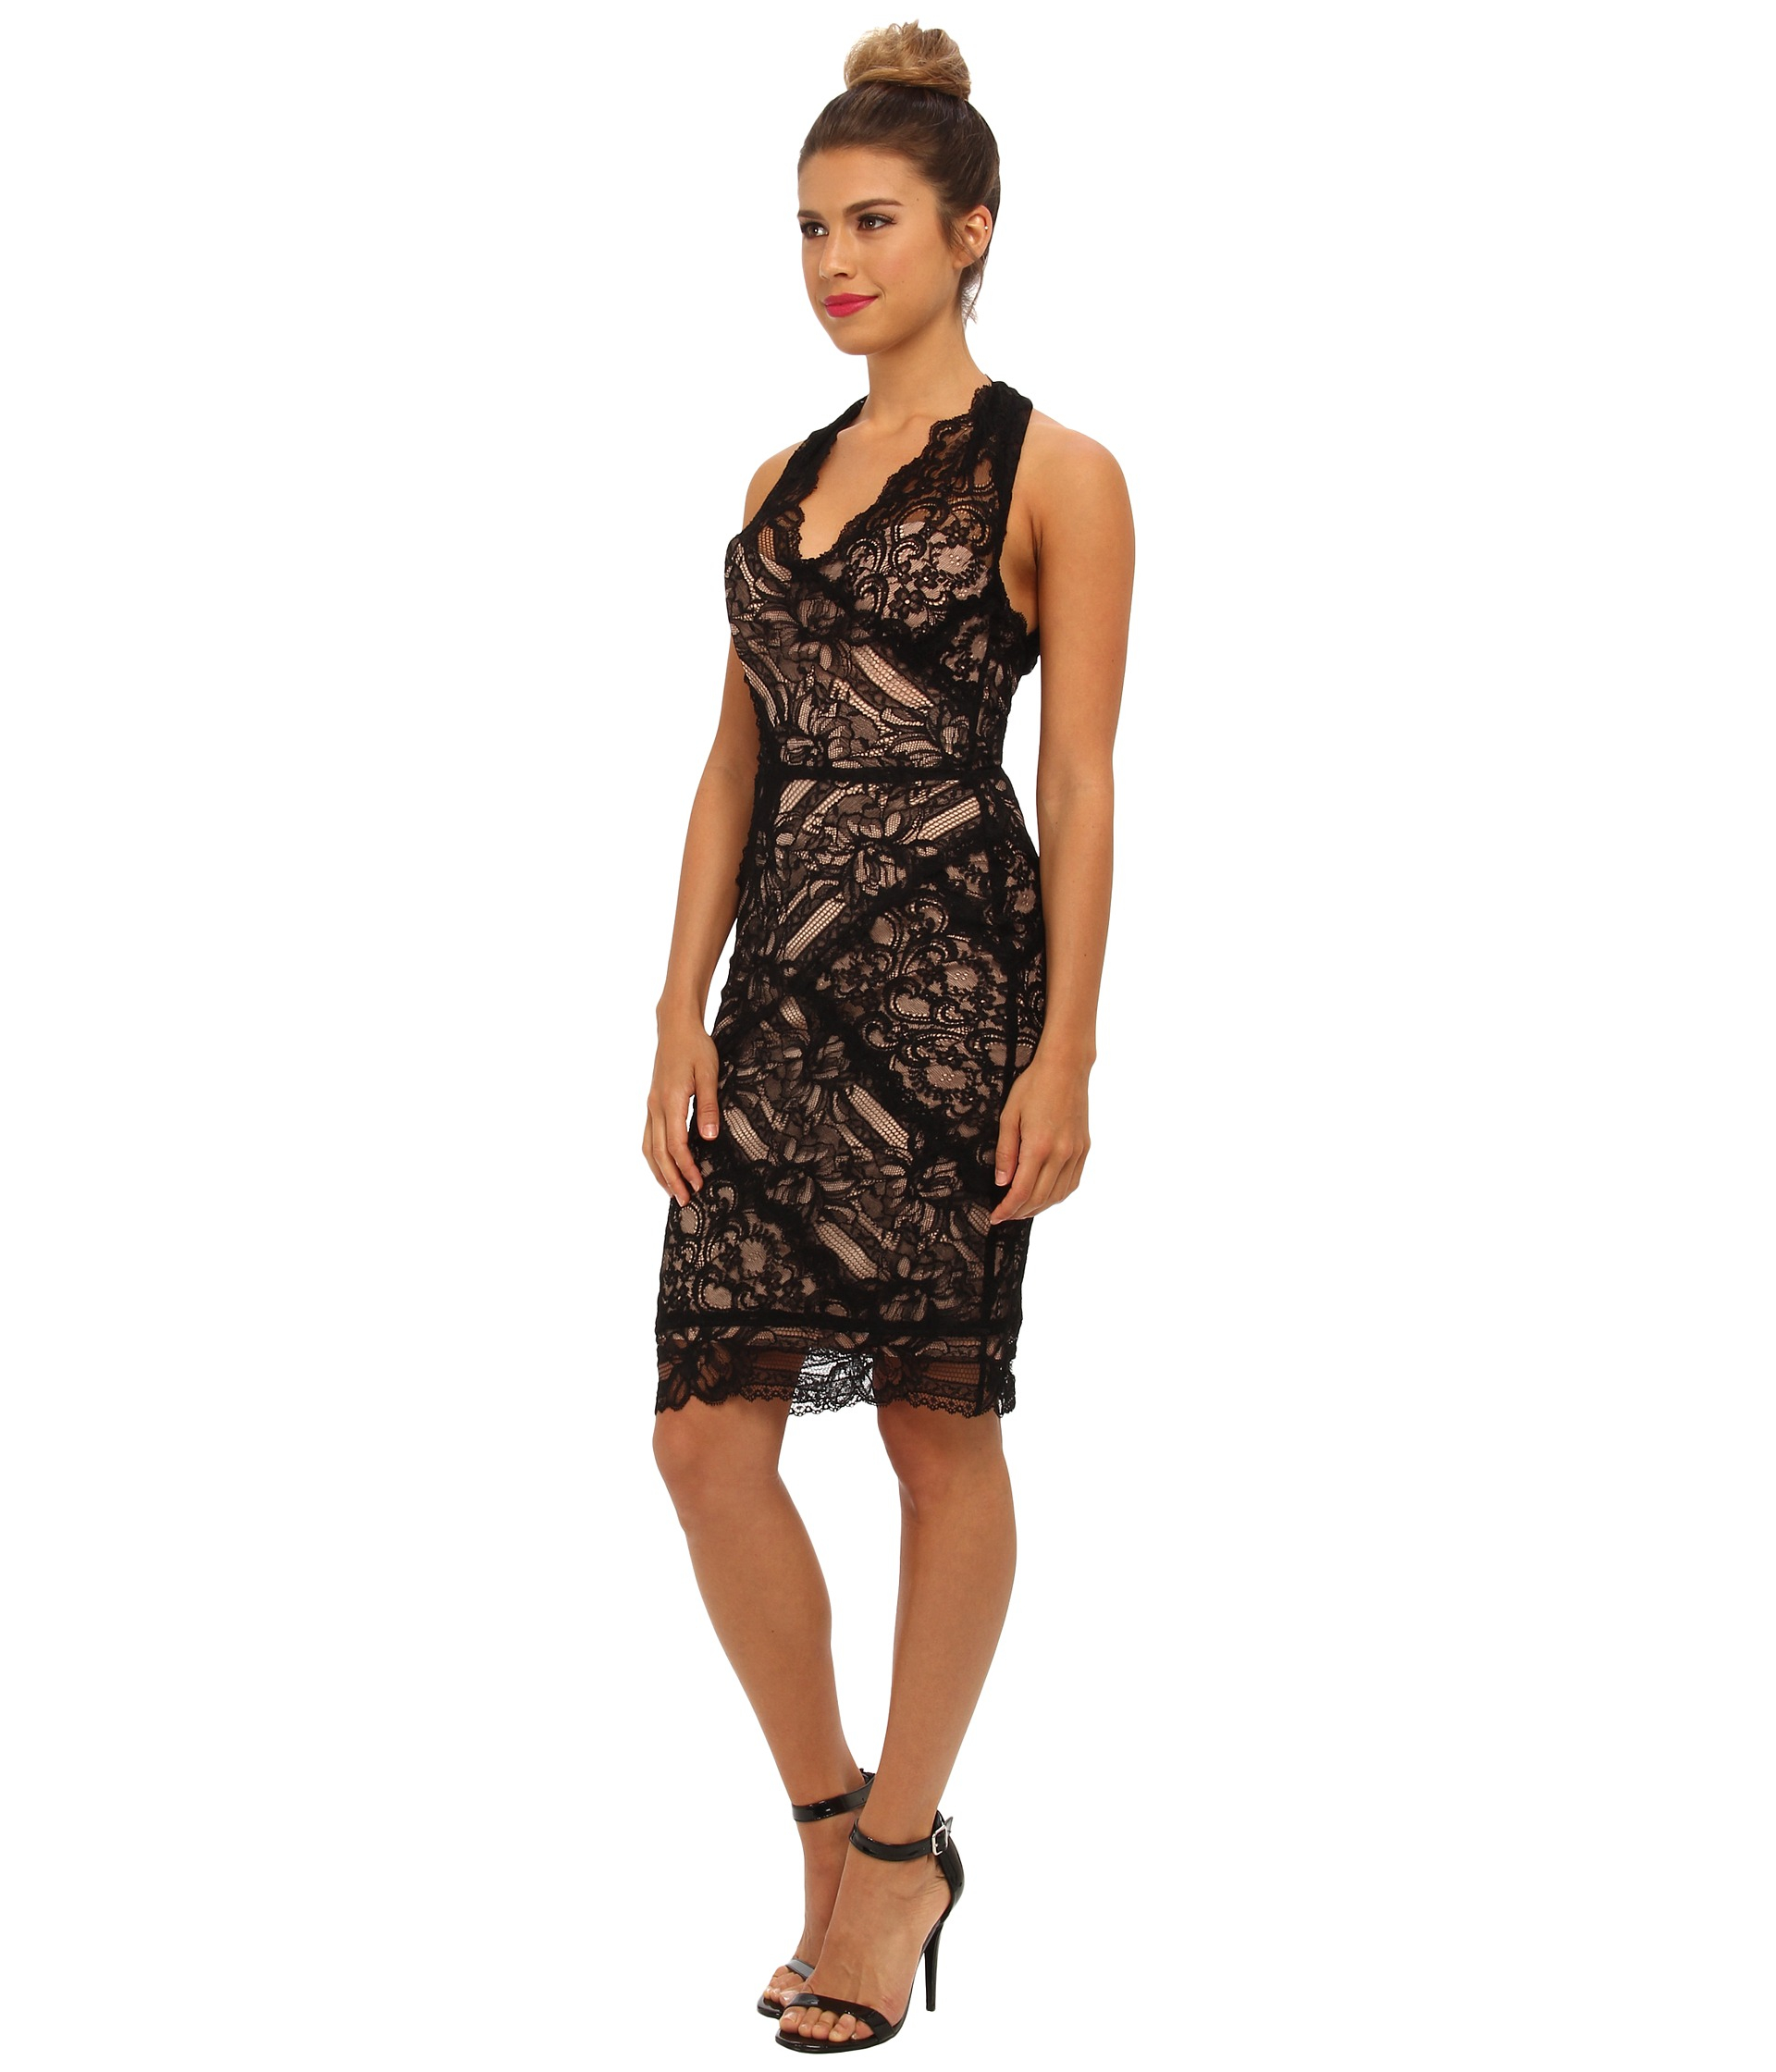 Nicole Miller Everly Lace Dress in Black  Lyst